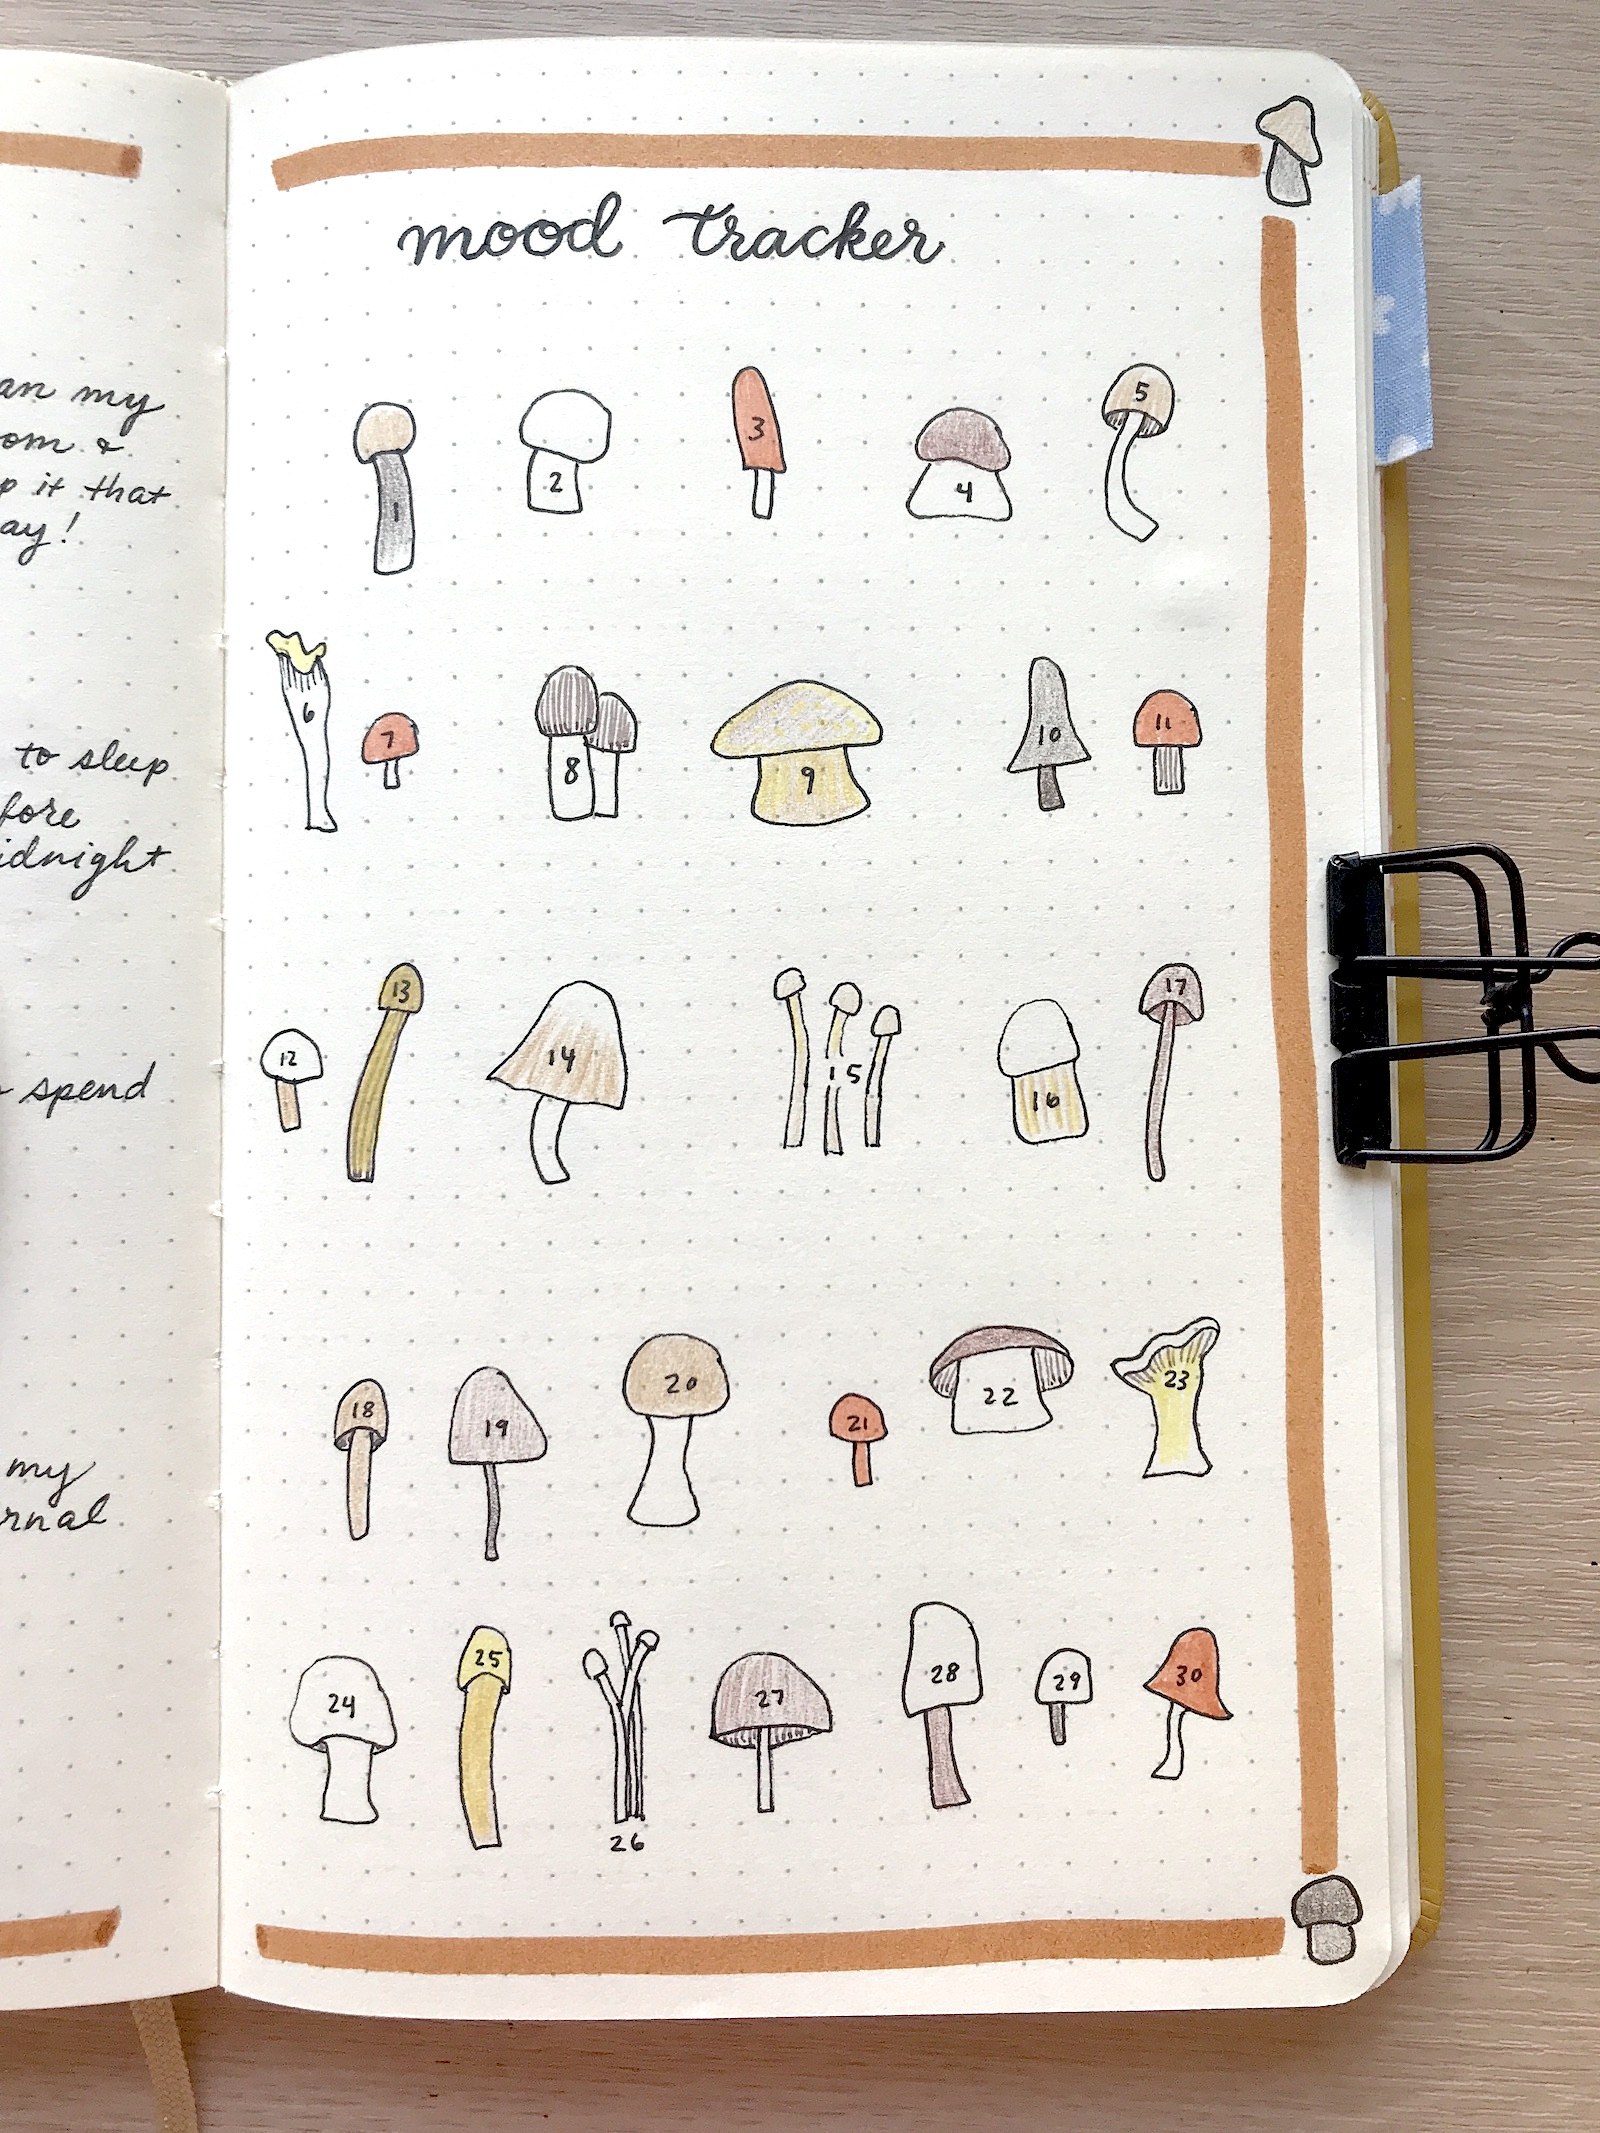 A mood tracker page in a journal featuring 30 hand-drawn mushroom illustrations.